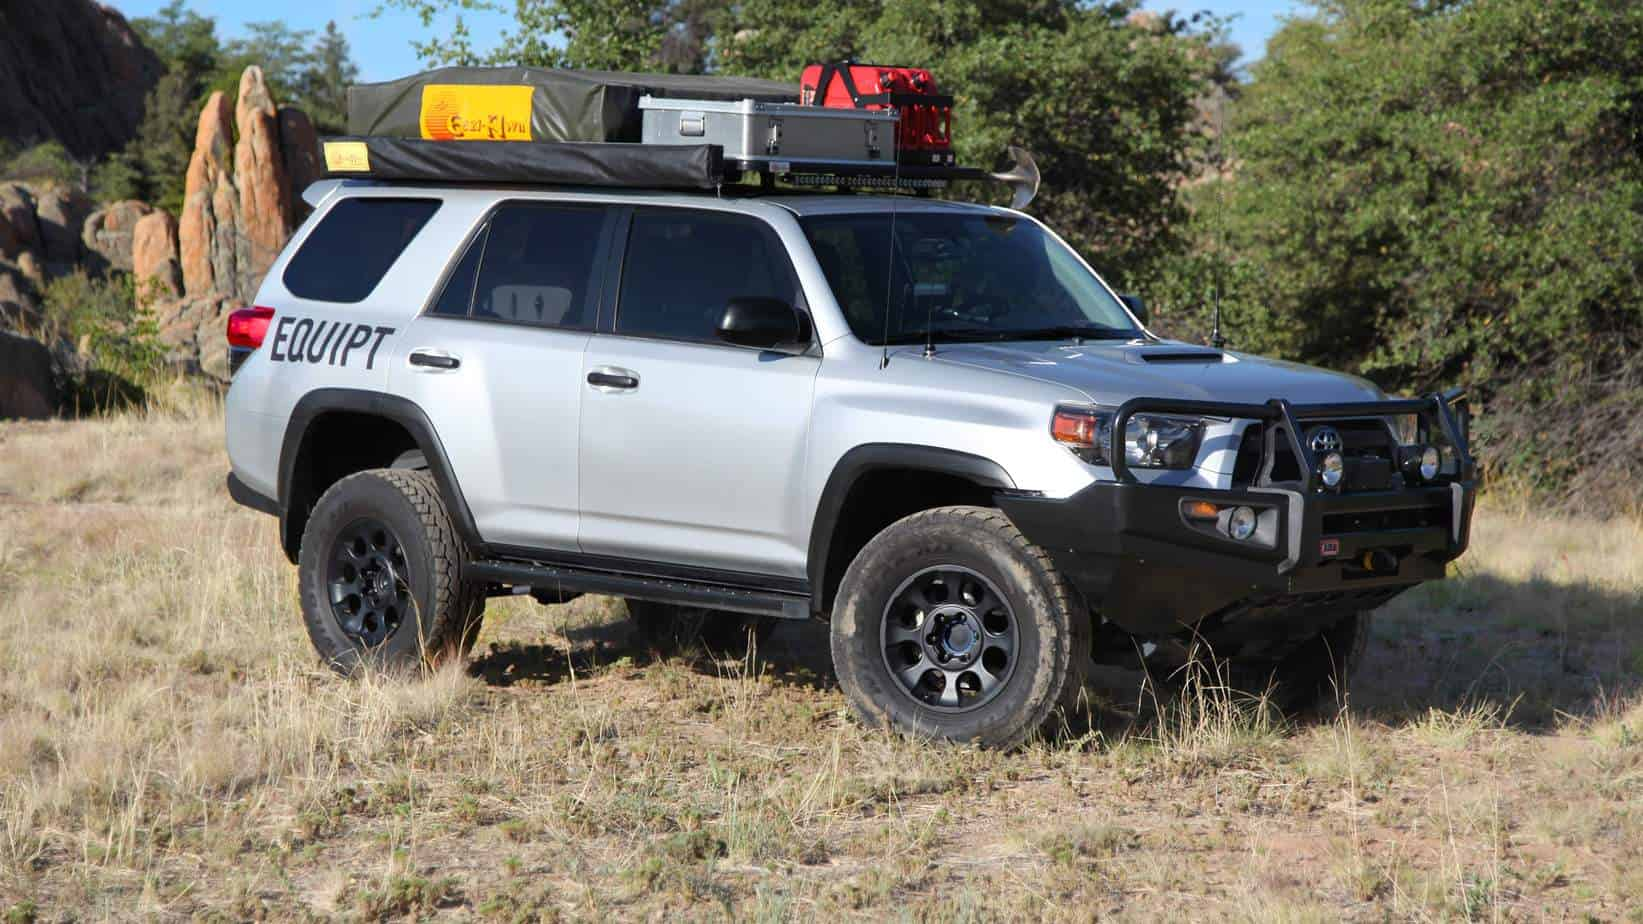 Featured Vehicle: Equipt Outfitter's Toyota 4Runner